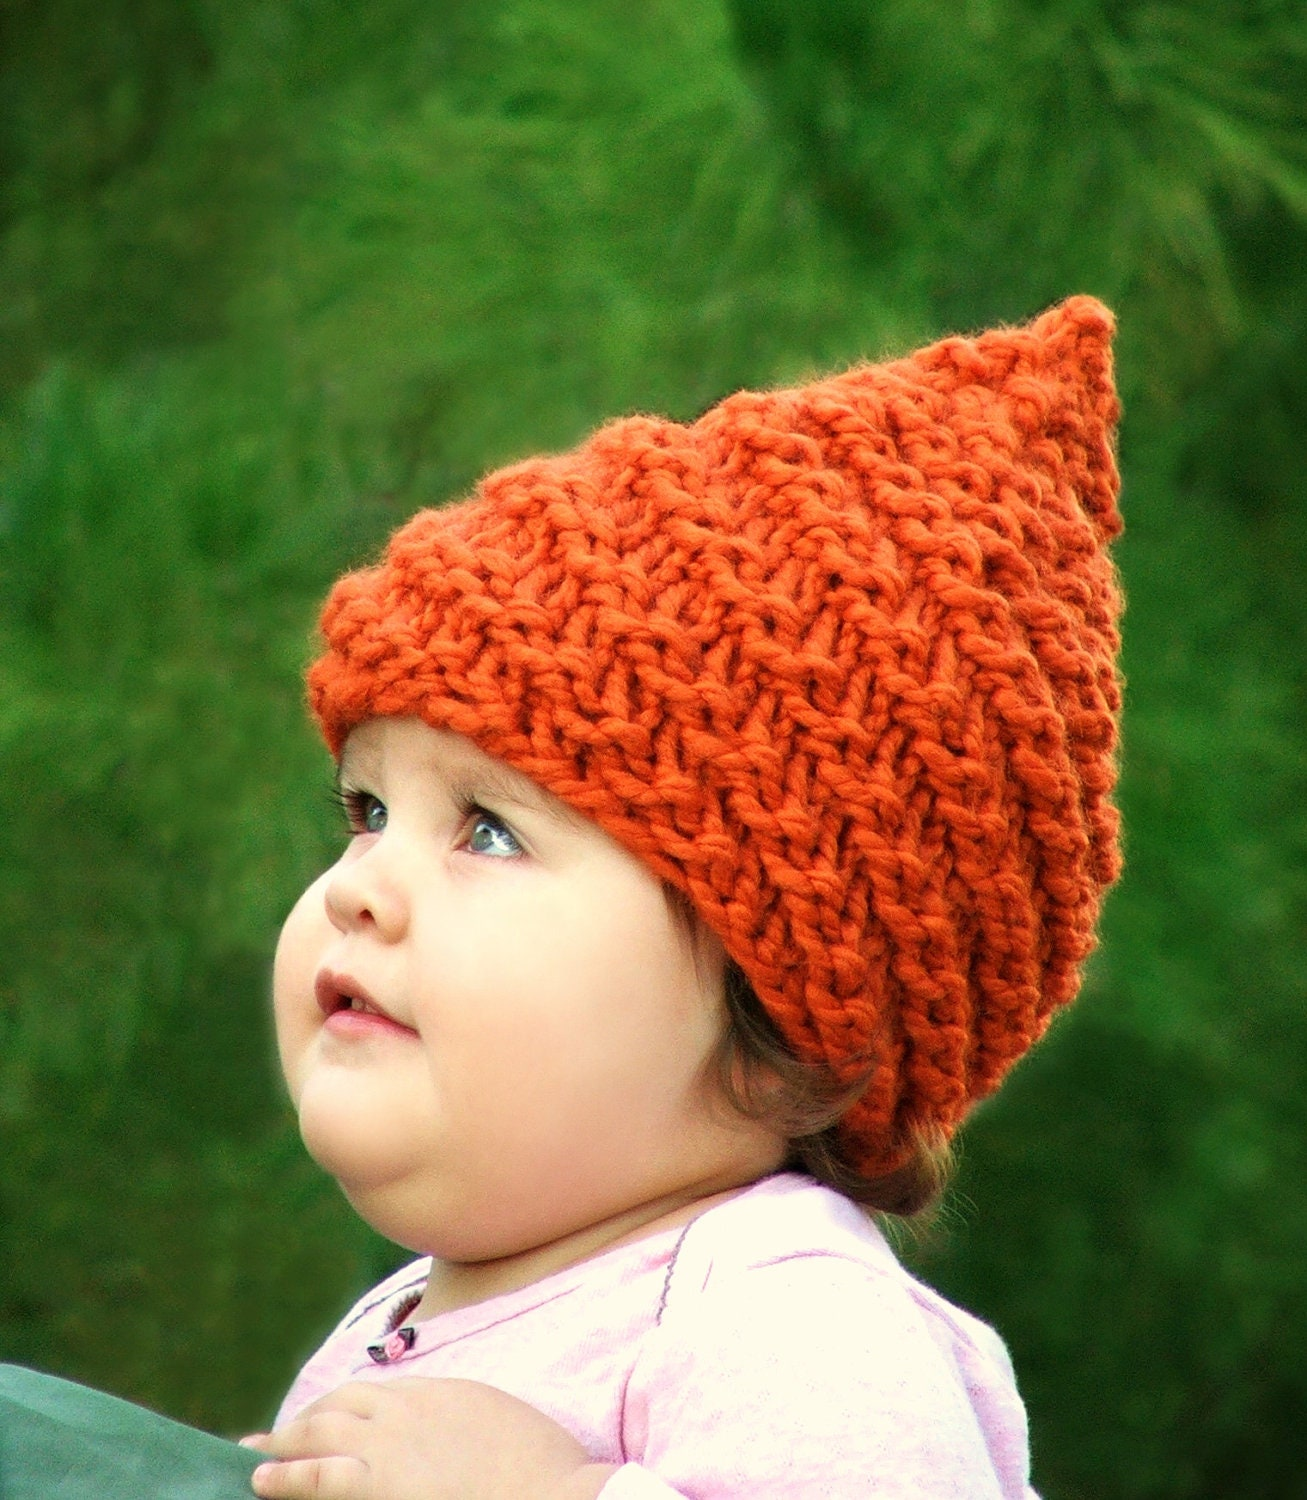 Baby Elf Knitting Pattern : Items similar to Infant Elf Hat Baby Gnome Hat Newborn ...